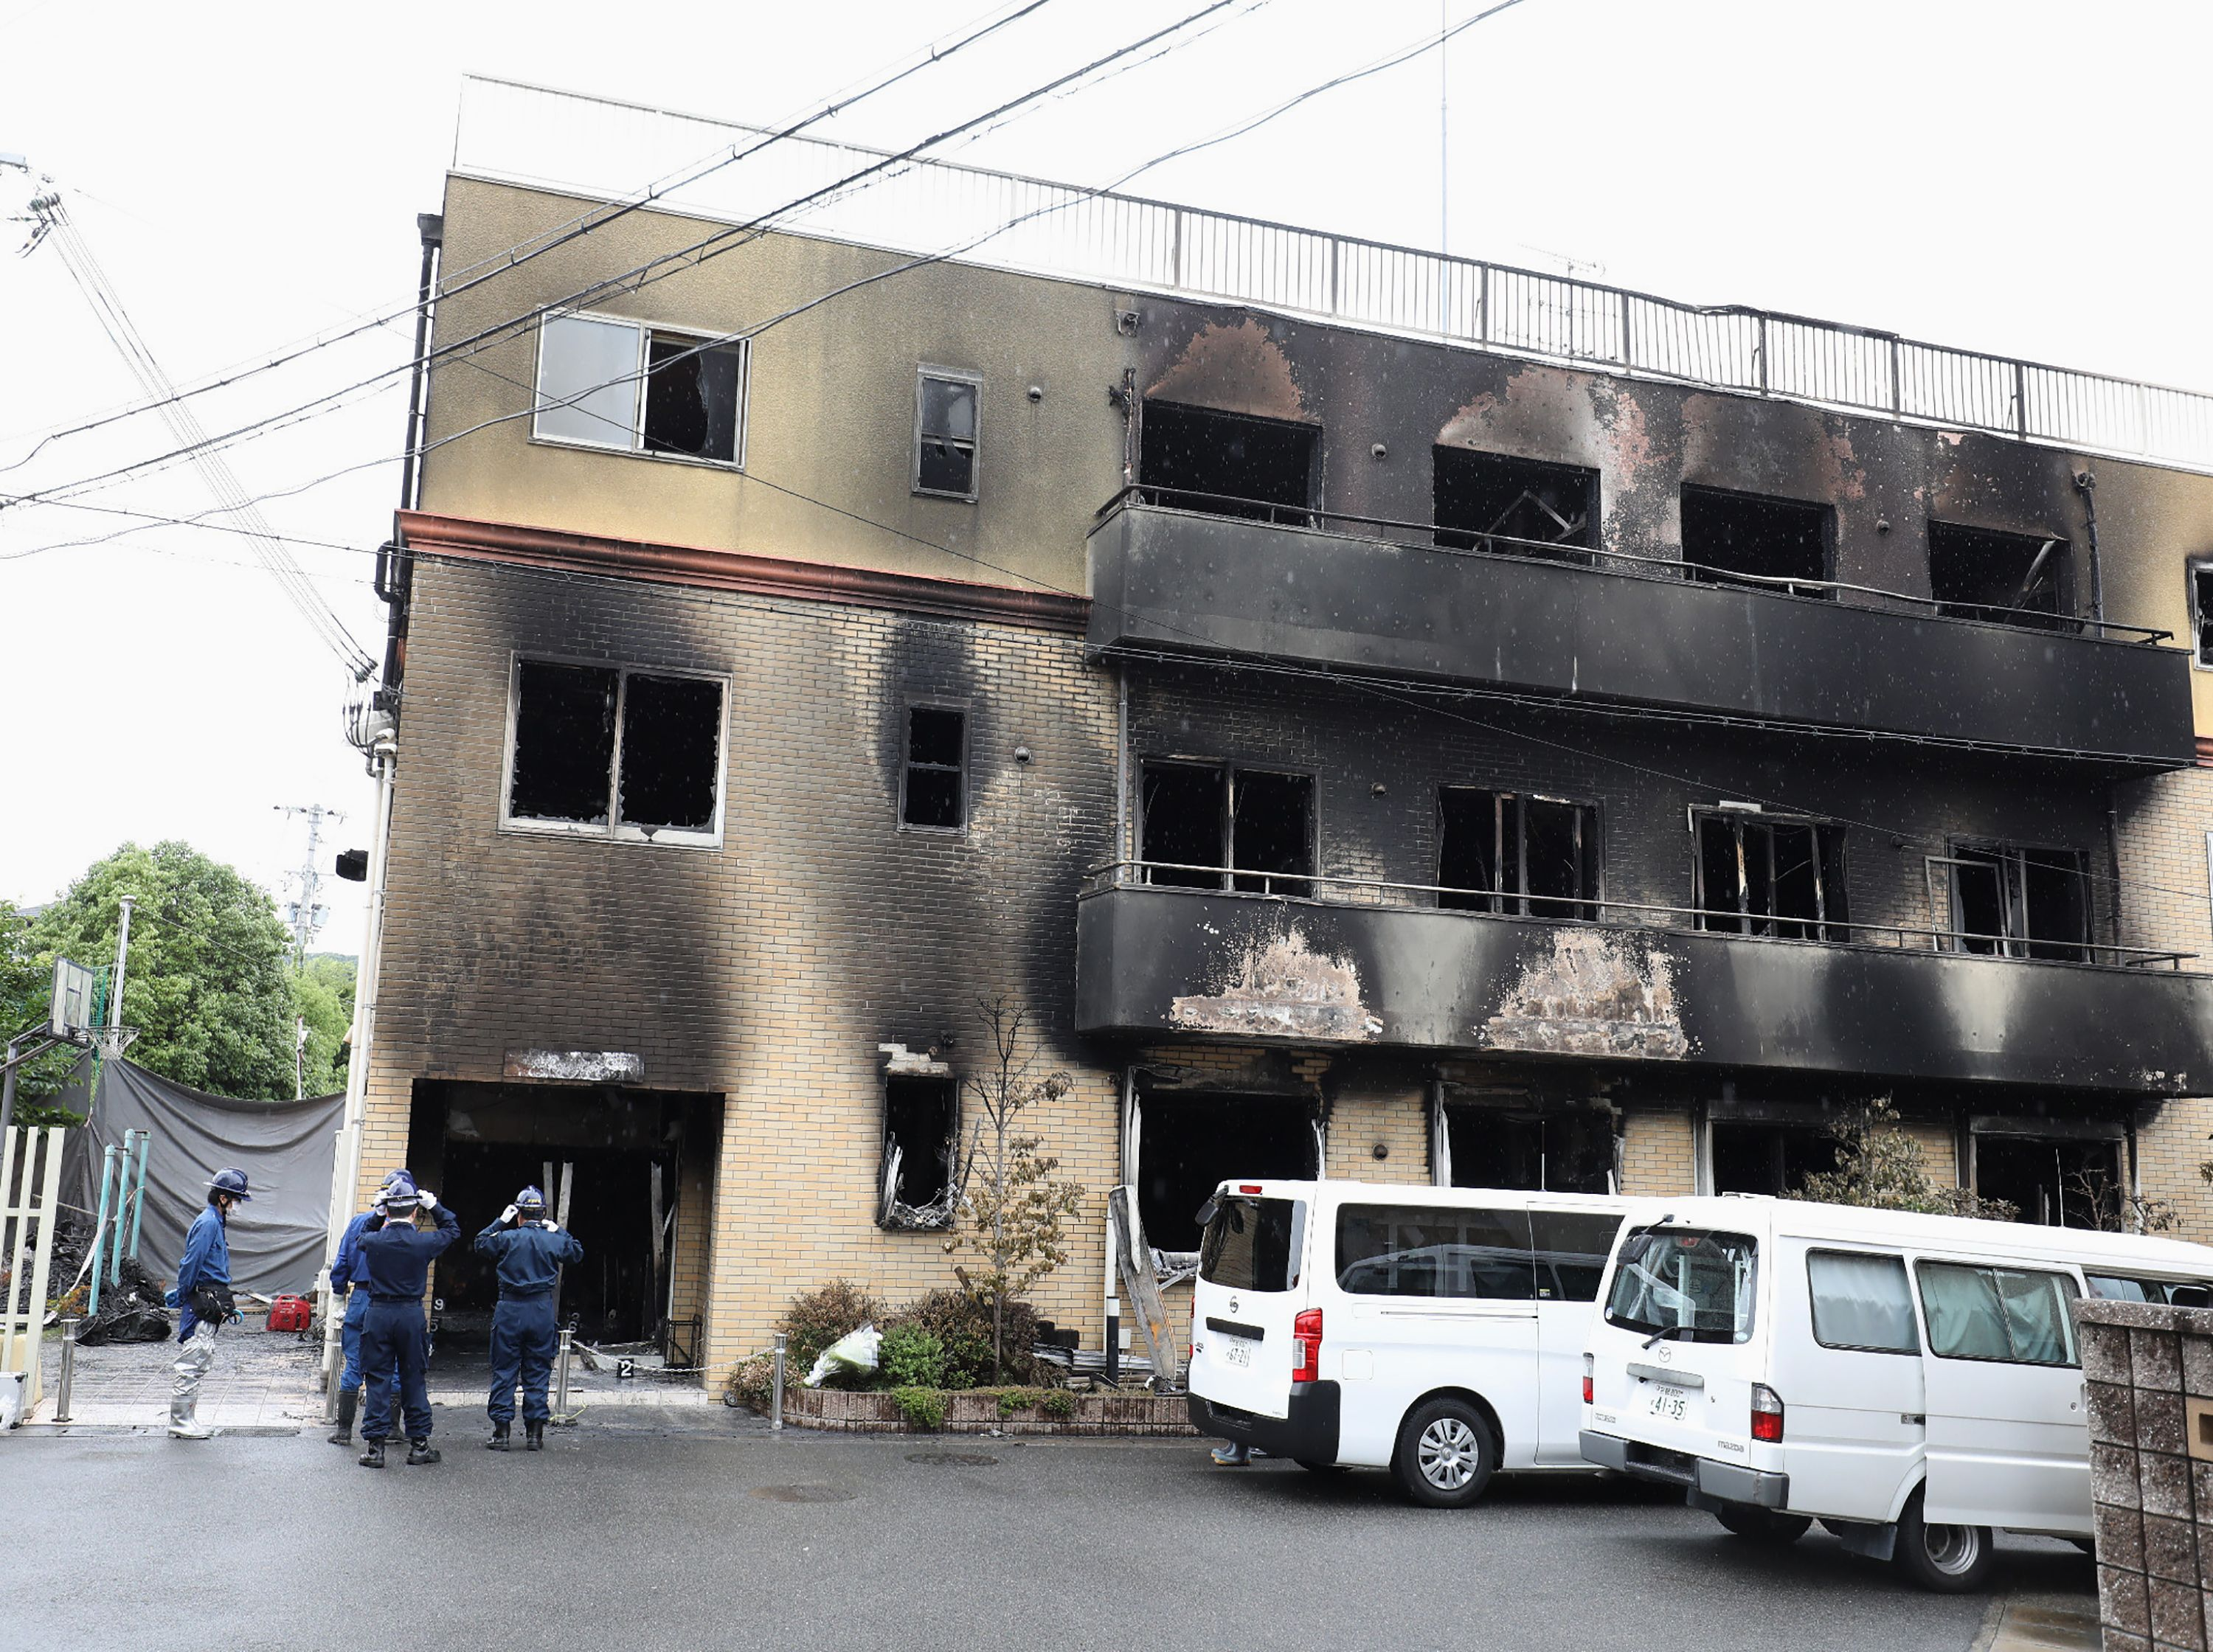 Japanese police officers inspect the scene where over 30 people died in a fire at the Kyoto Animation studio building in Kyoto on July 19, 2019 (Photo by JIJI PRESS/AFP/Getty Images)